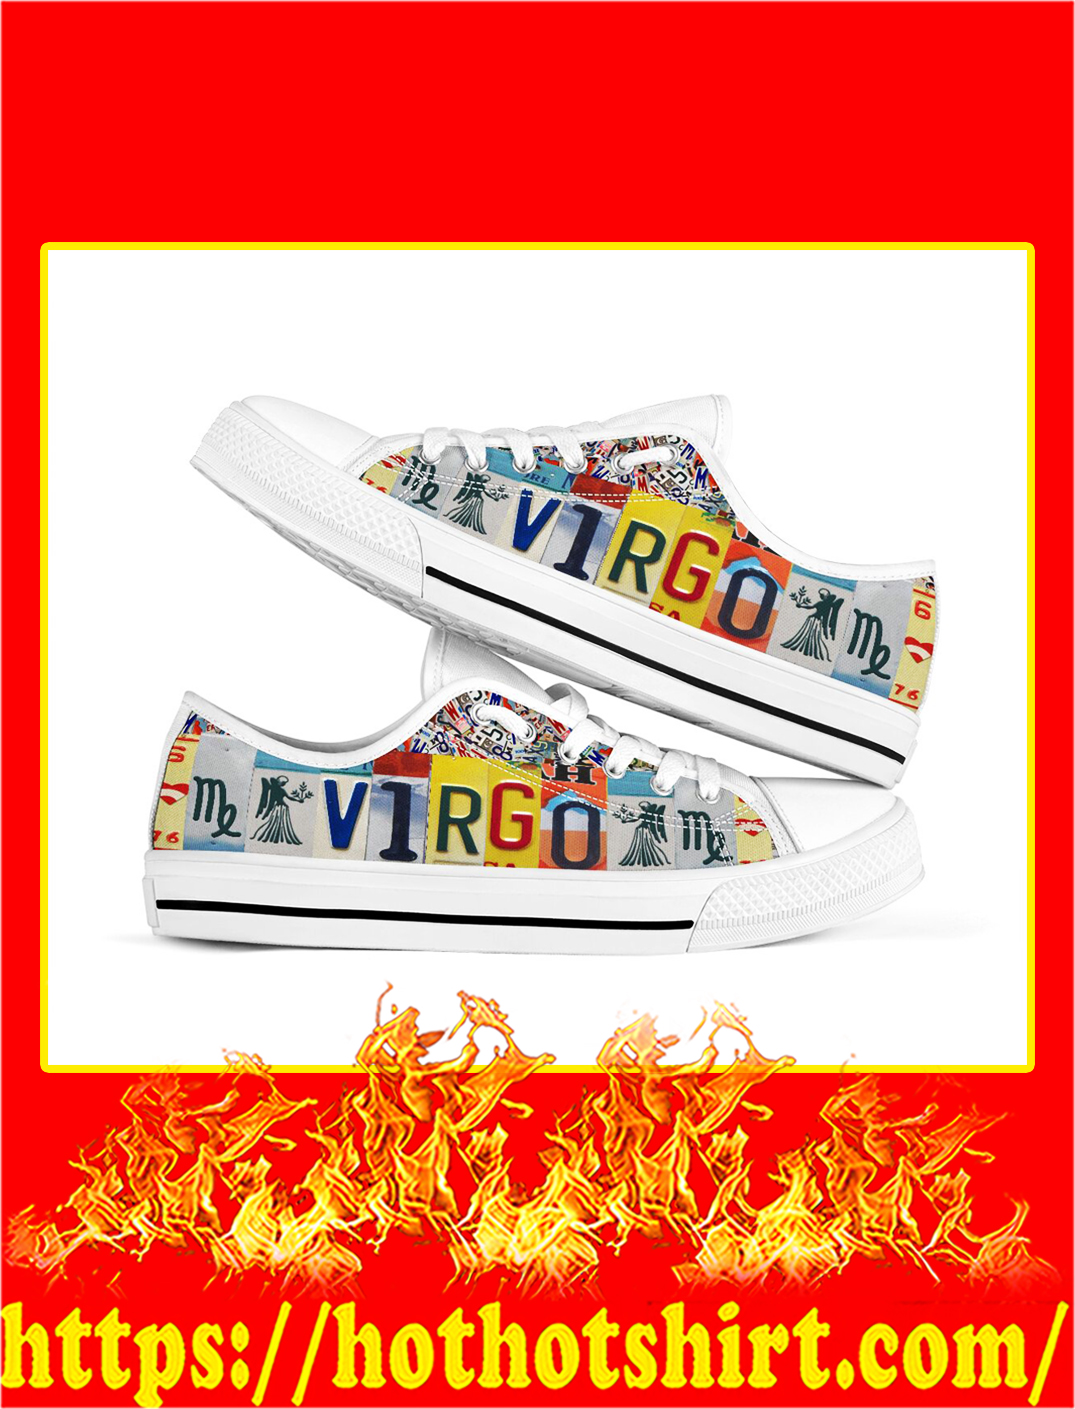 Virgo license plates low top shoes- pic 1